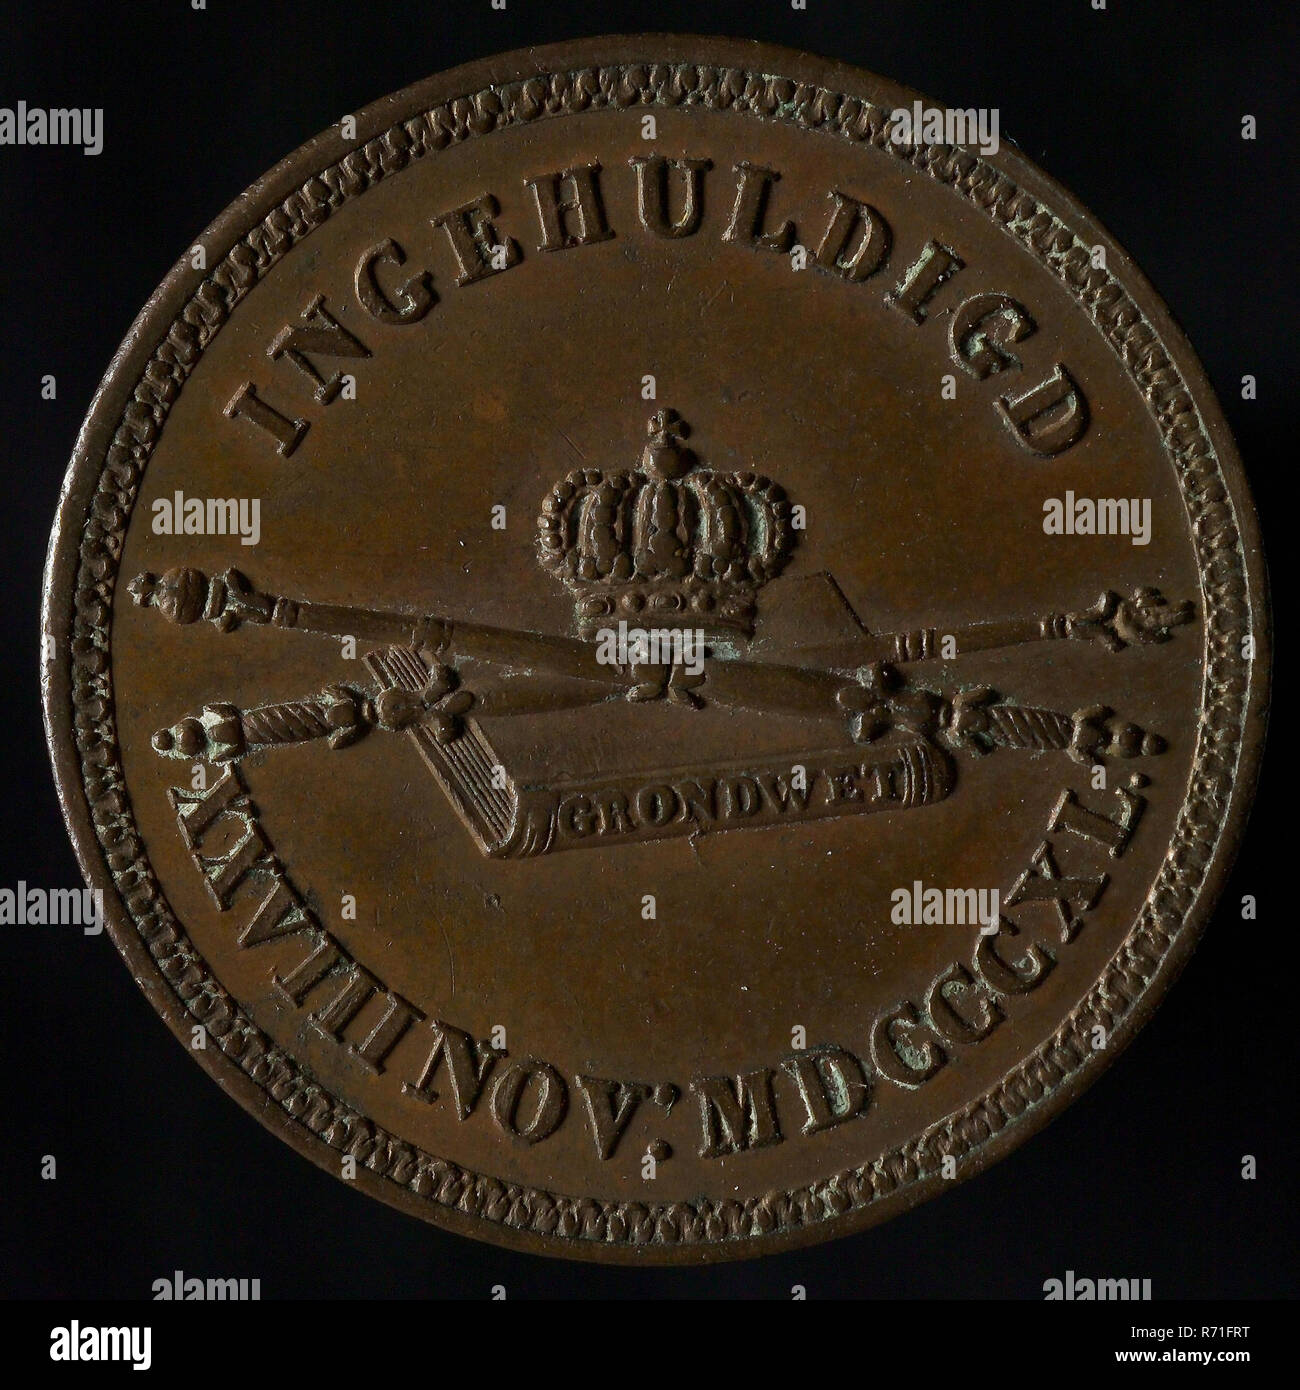 Medal on the Inauguration of King Willem II in Amsterdam, medallions bronze bronze 2,3, text only, WILLEM II KING OF THE NETHERLANDS (in the field) Willem II royal house Oranjehuis Oranje Stock Photo